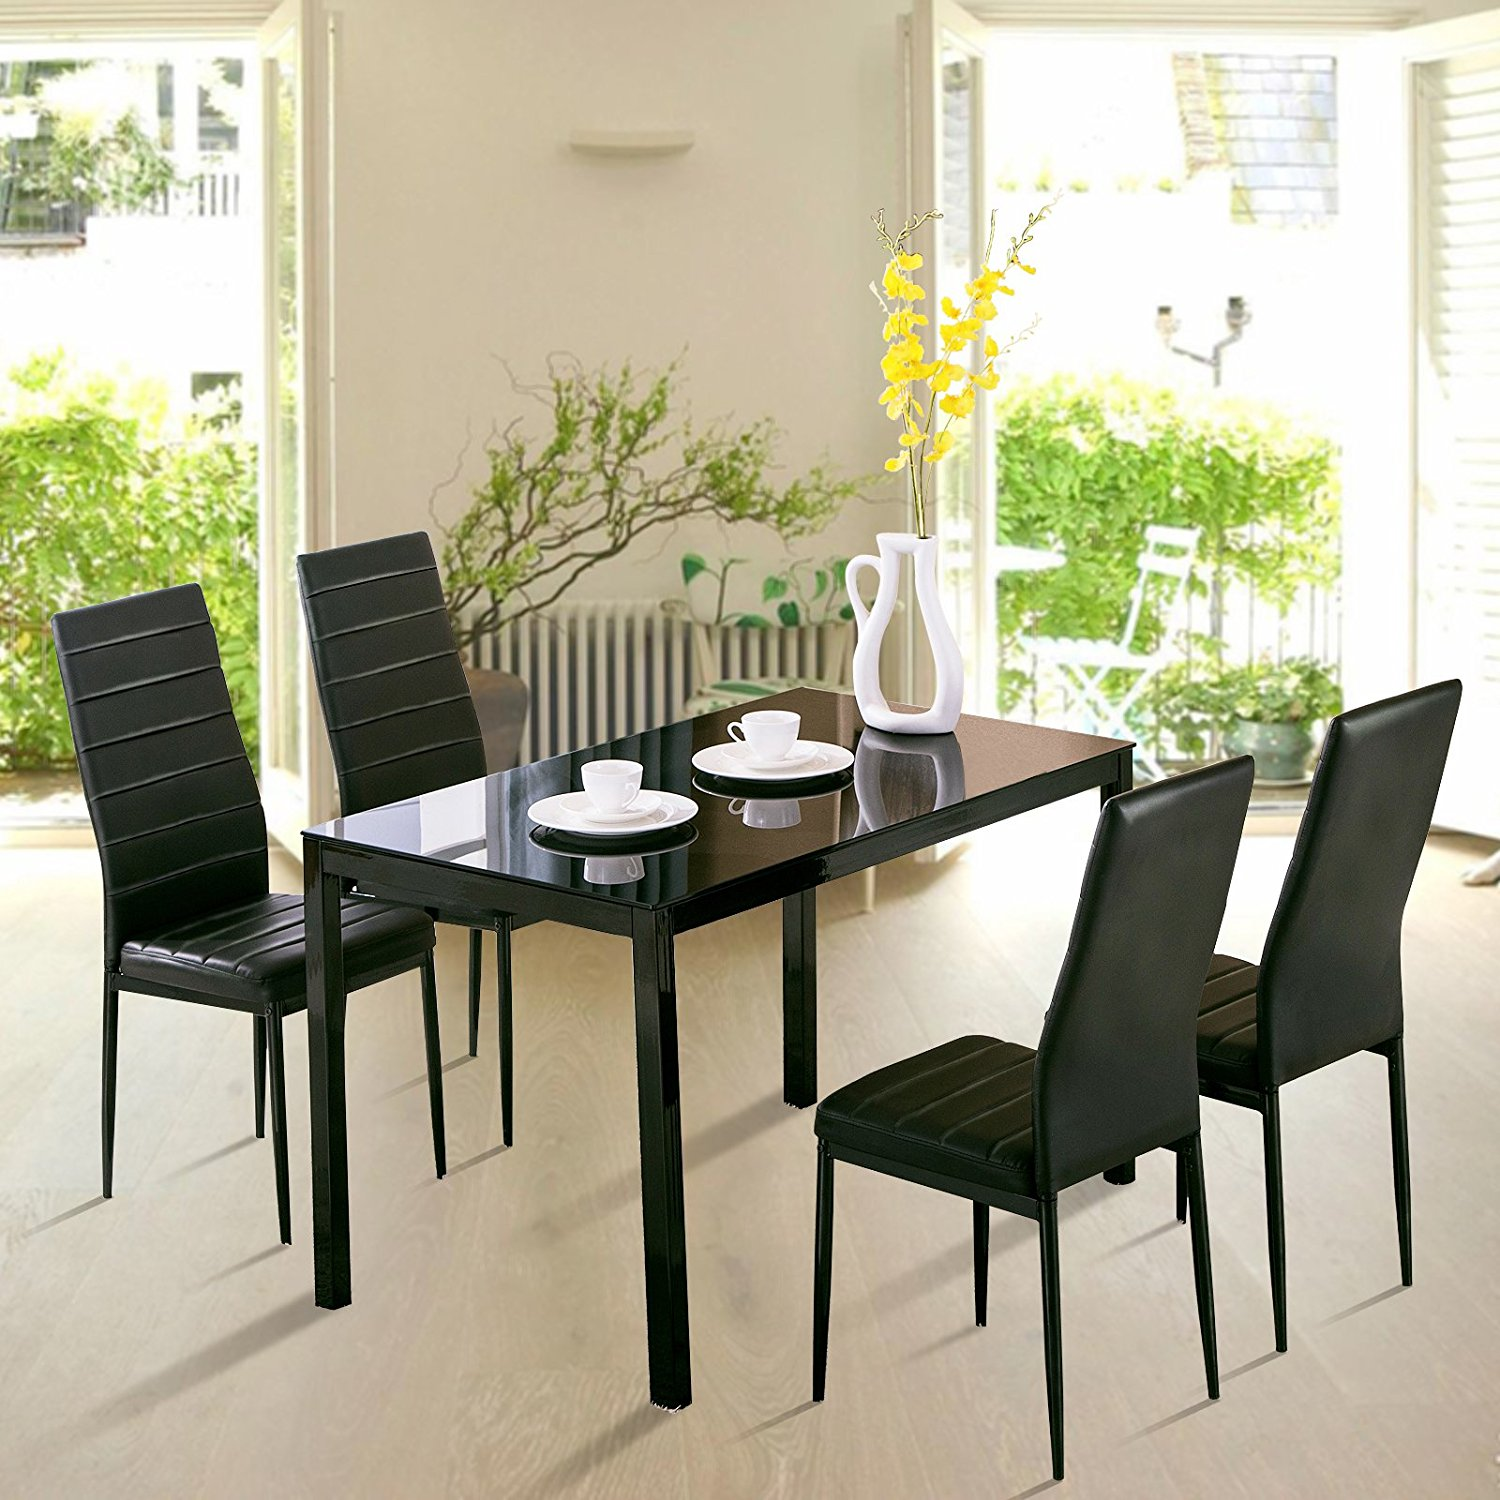 Uenjoy 5 Piece Dining Table Set 4 Chairs Glass Metal Kitchen Room Breakfast & Dining Table Set under $200